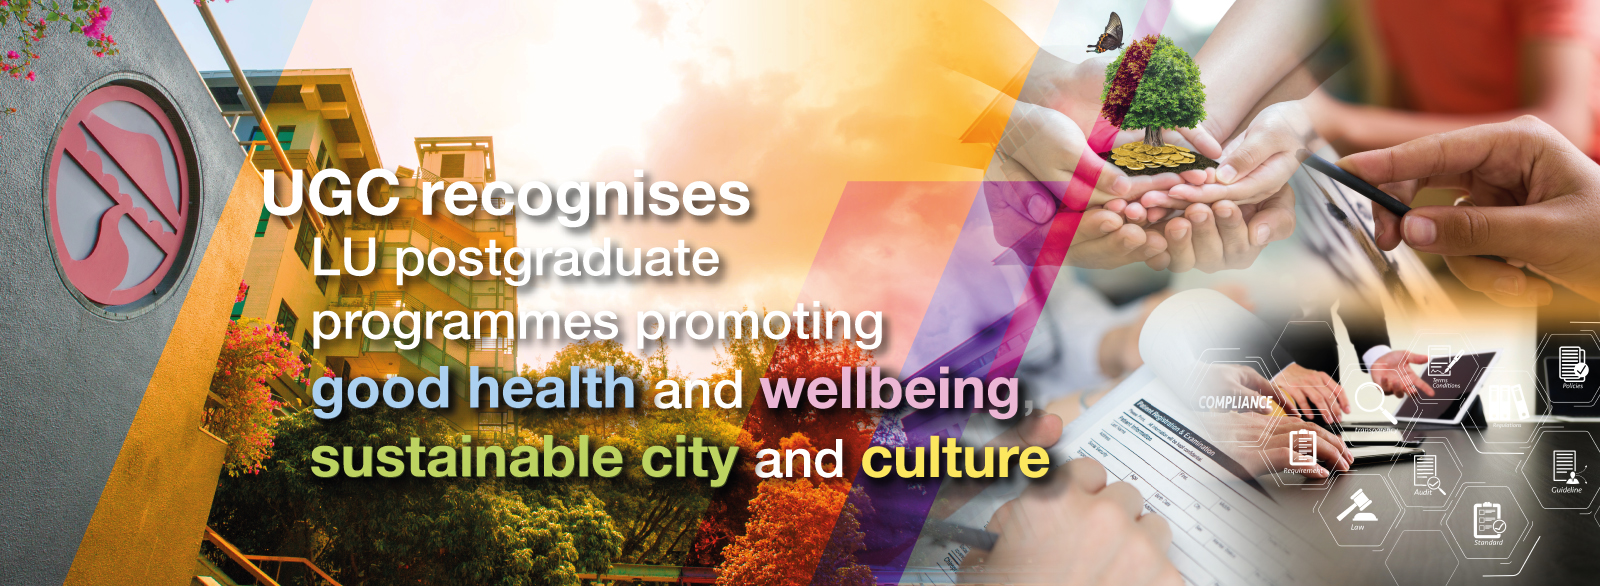 UGC recognises LU postgraduate programmes promoting good health and wellbeing, sustainable city and culture